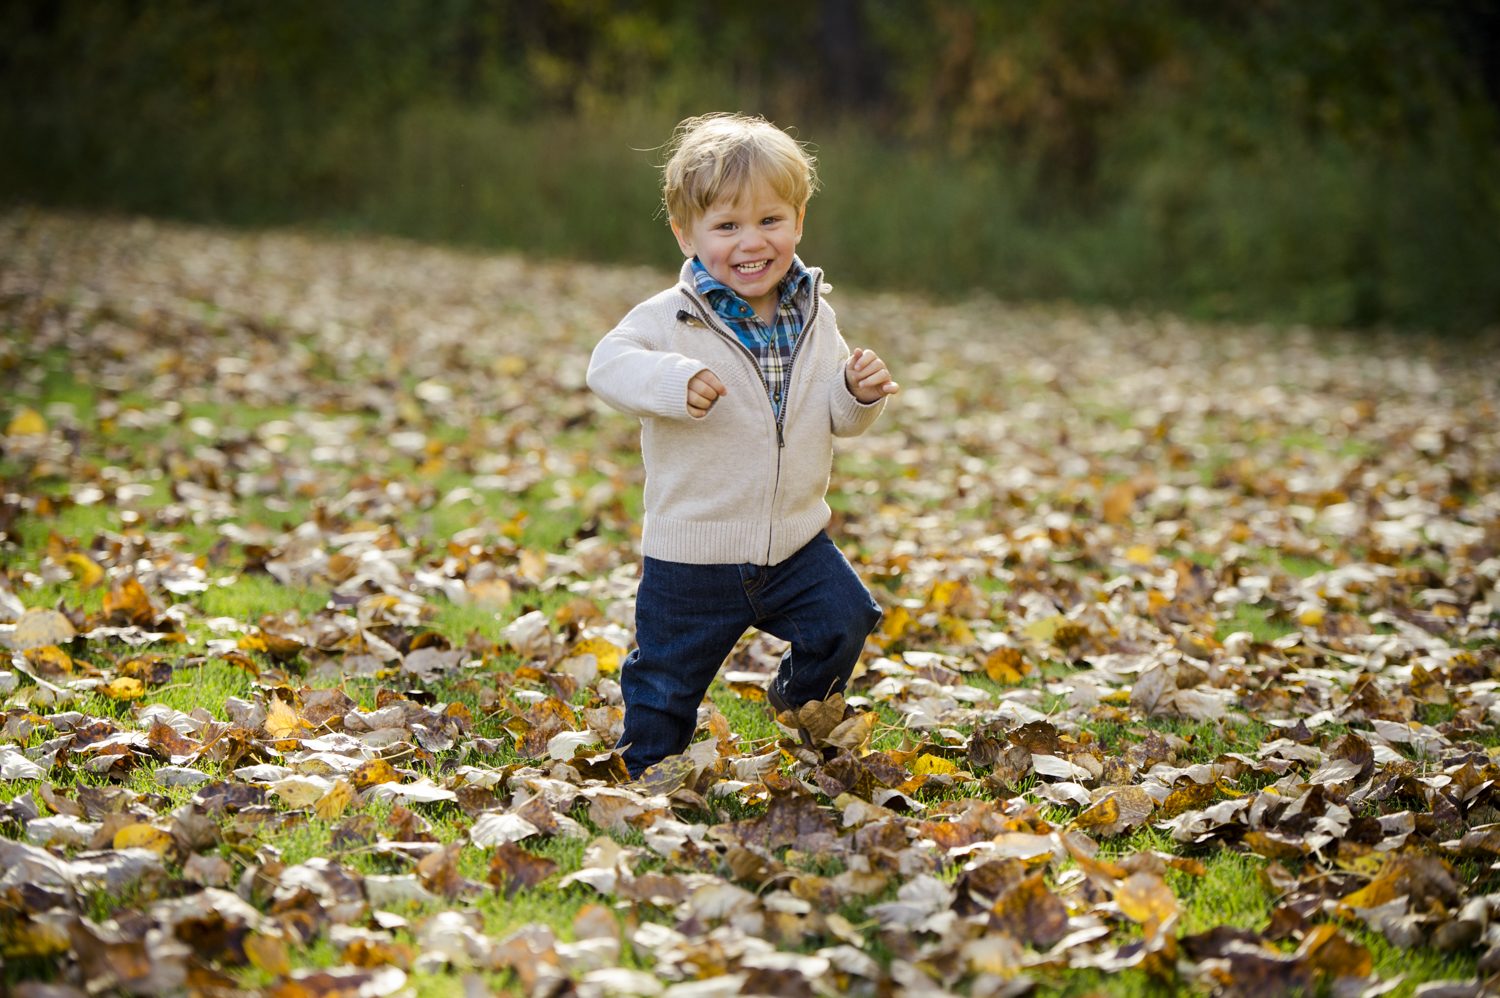 fall_lifestyle_family_leaves_candid_playing-002.jpg